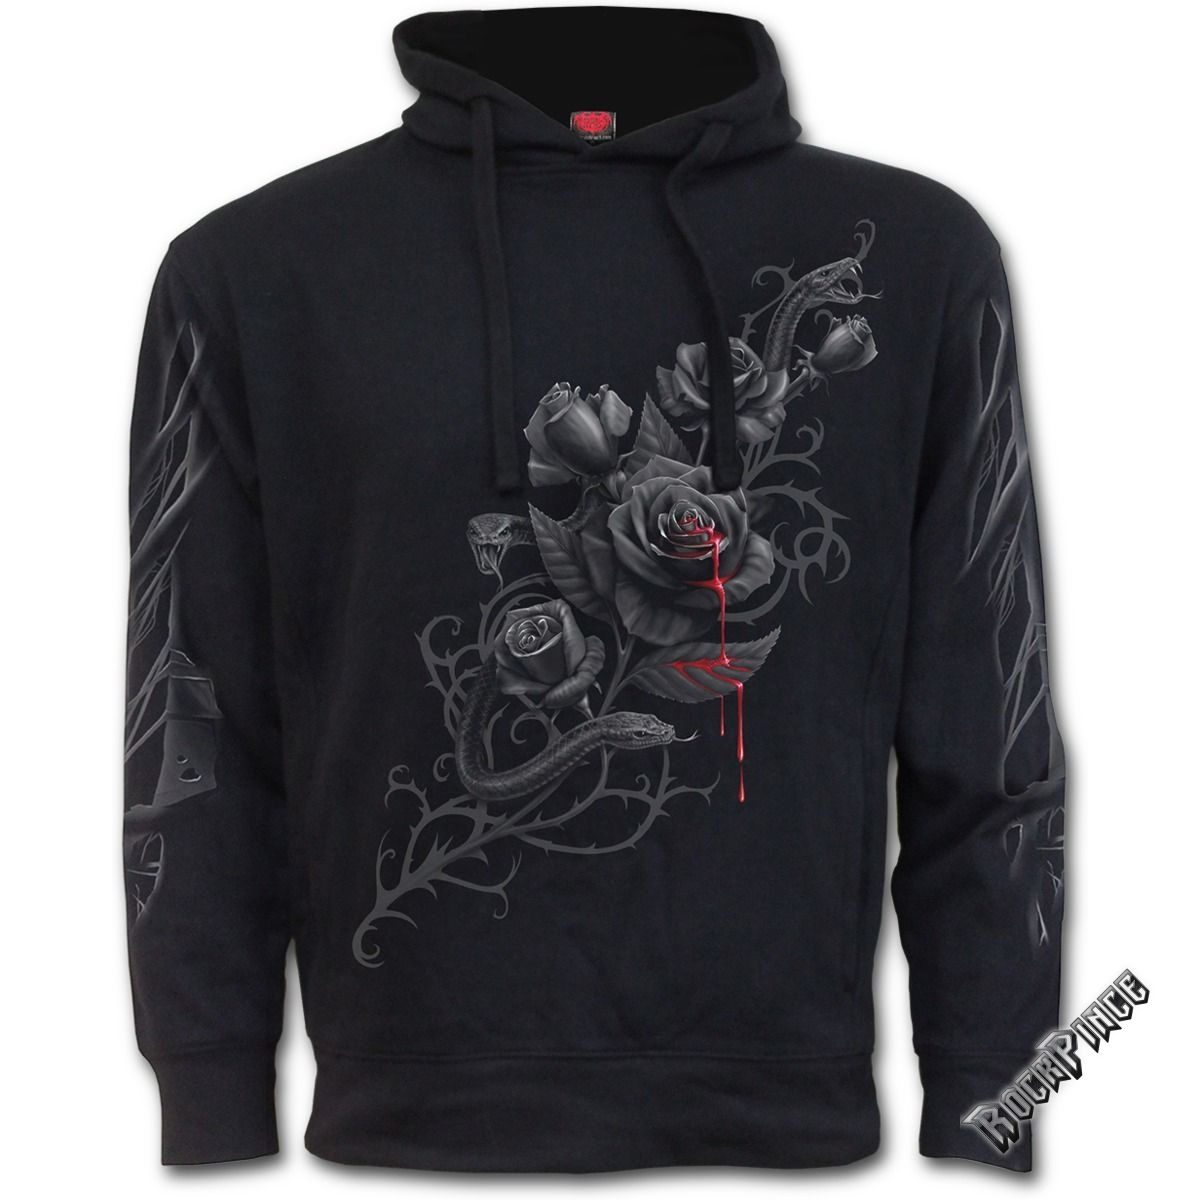 FATAL ATTRACTION - Side Pocket Stitched Hoody Black (Plain) - D061F272